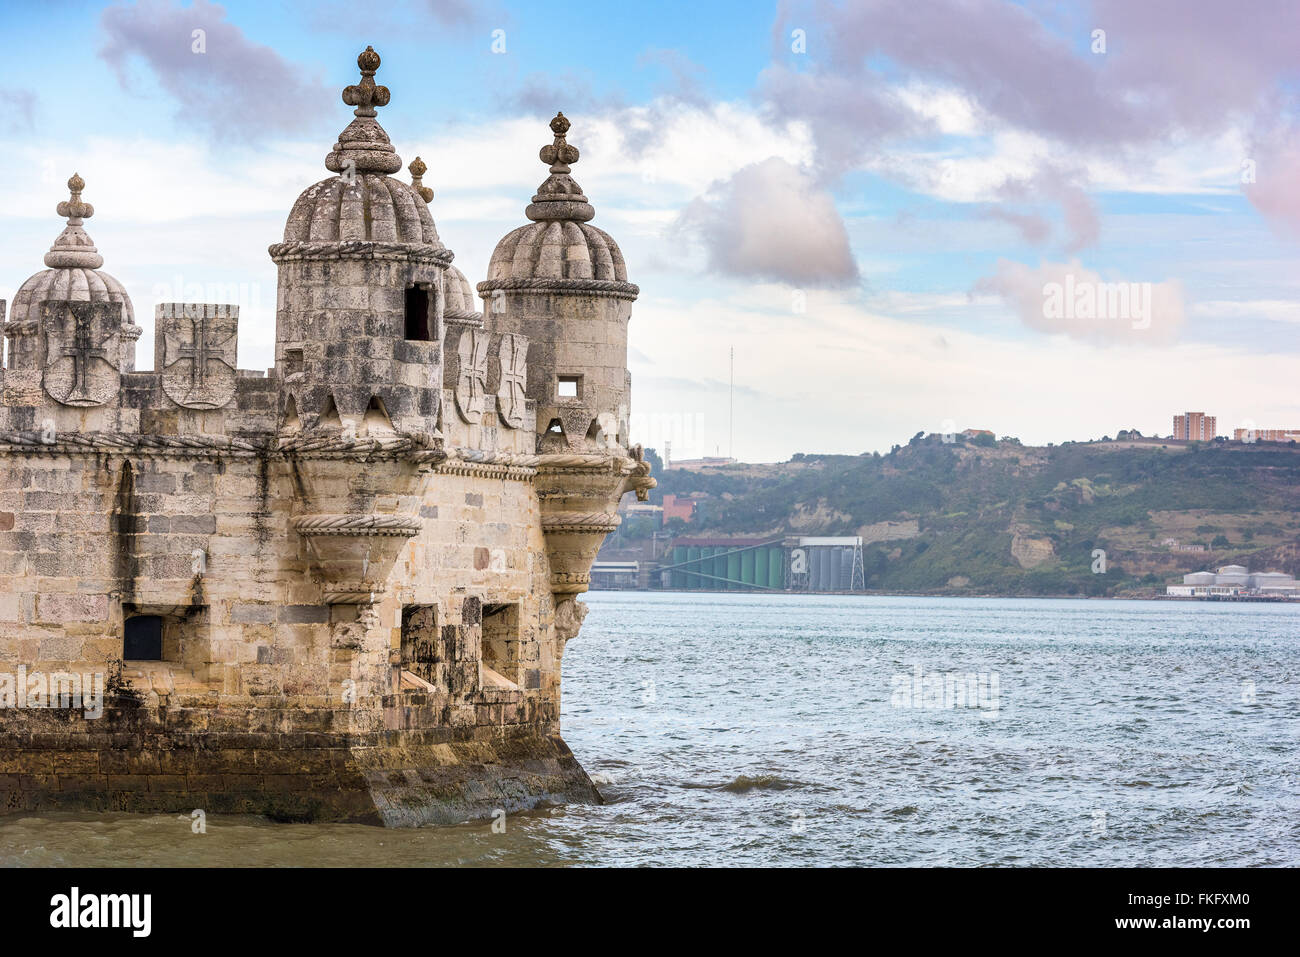 Turret of Belem Tower in Lisbon, Portugal. - Stock Image